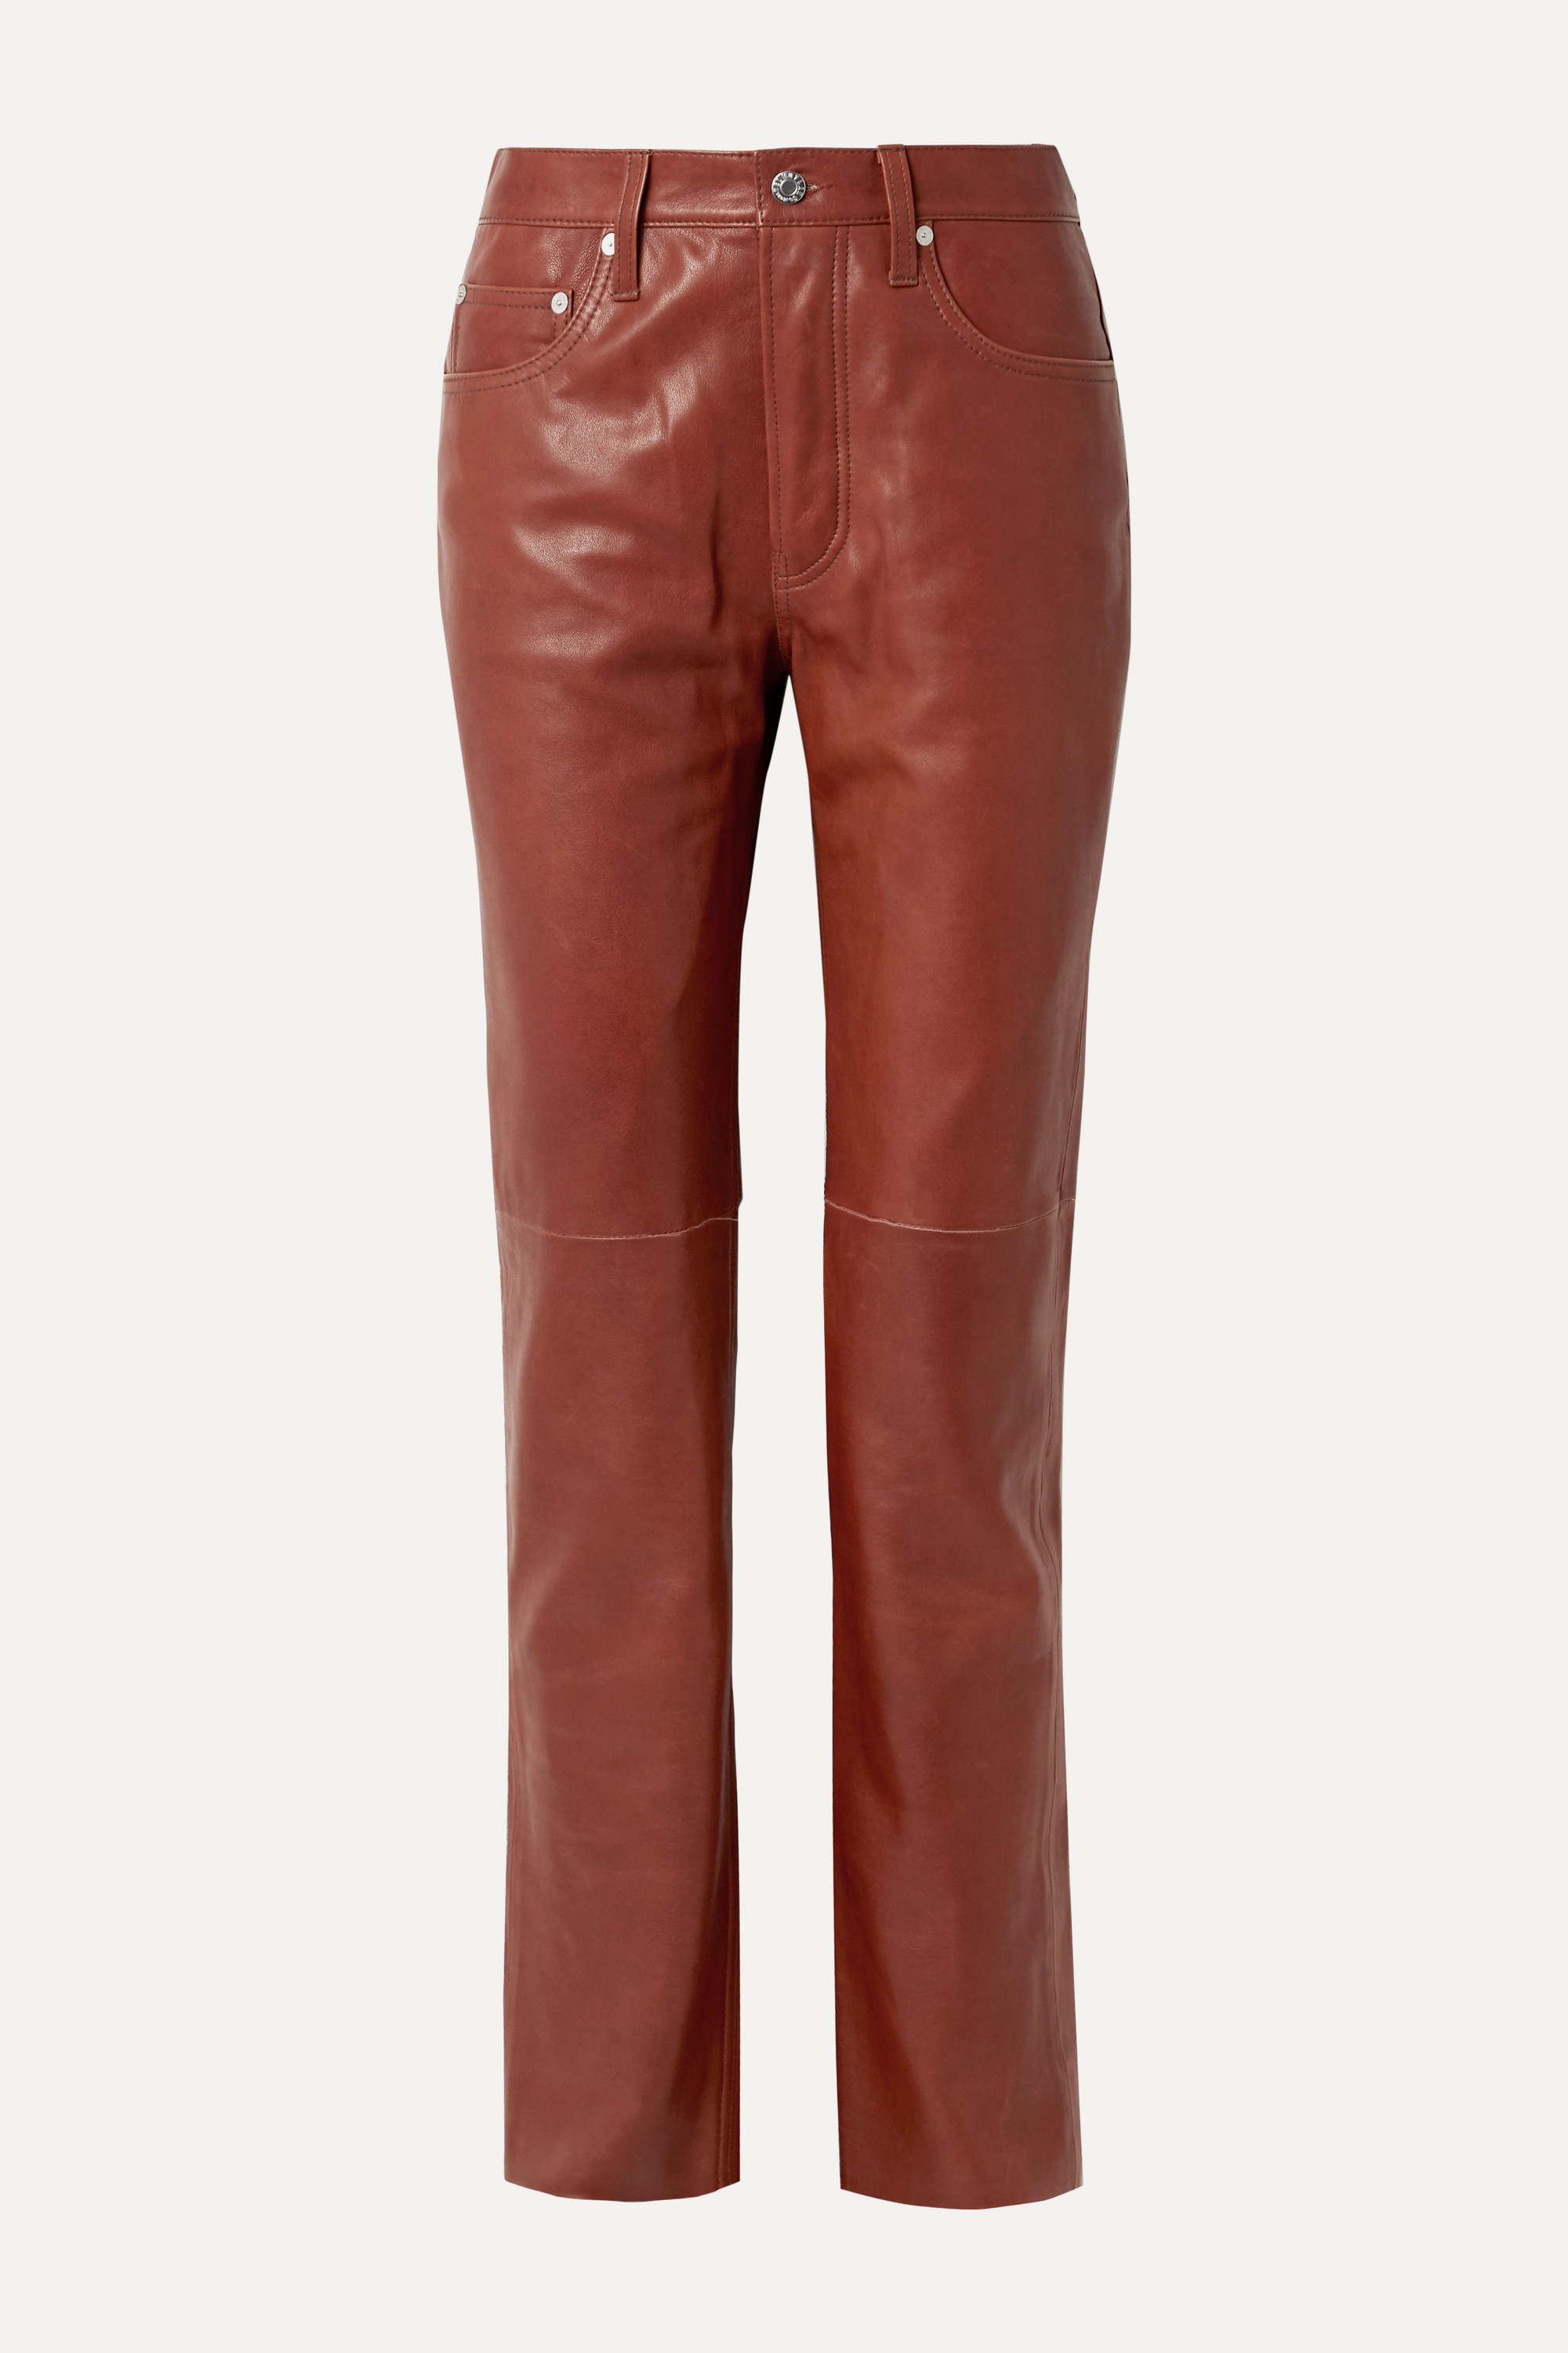 Leather straight-leg pants by Helmut-Lang, available on net-a-porter.com for $836 Kim Kardashian Pants Exact Product